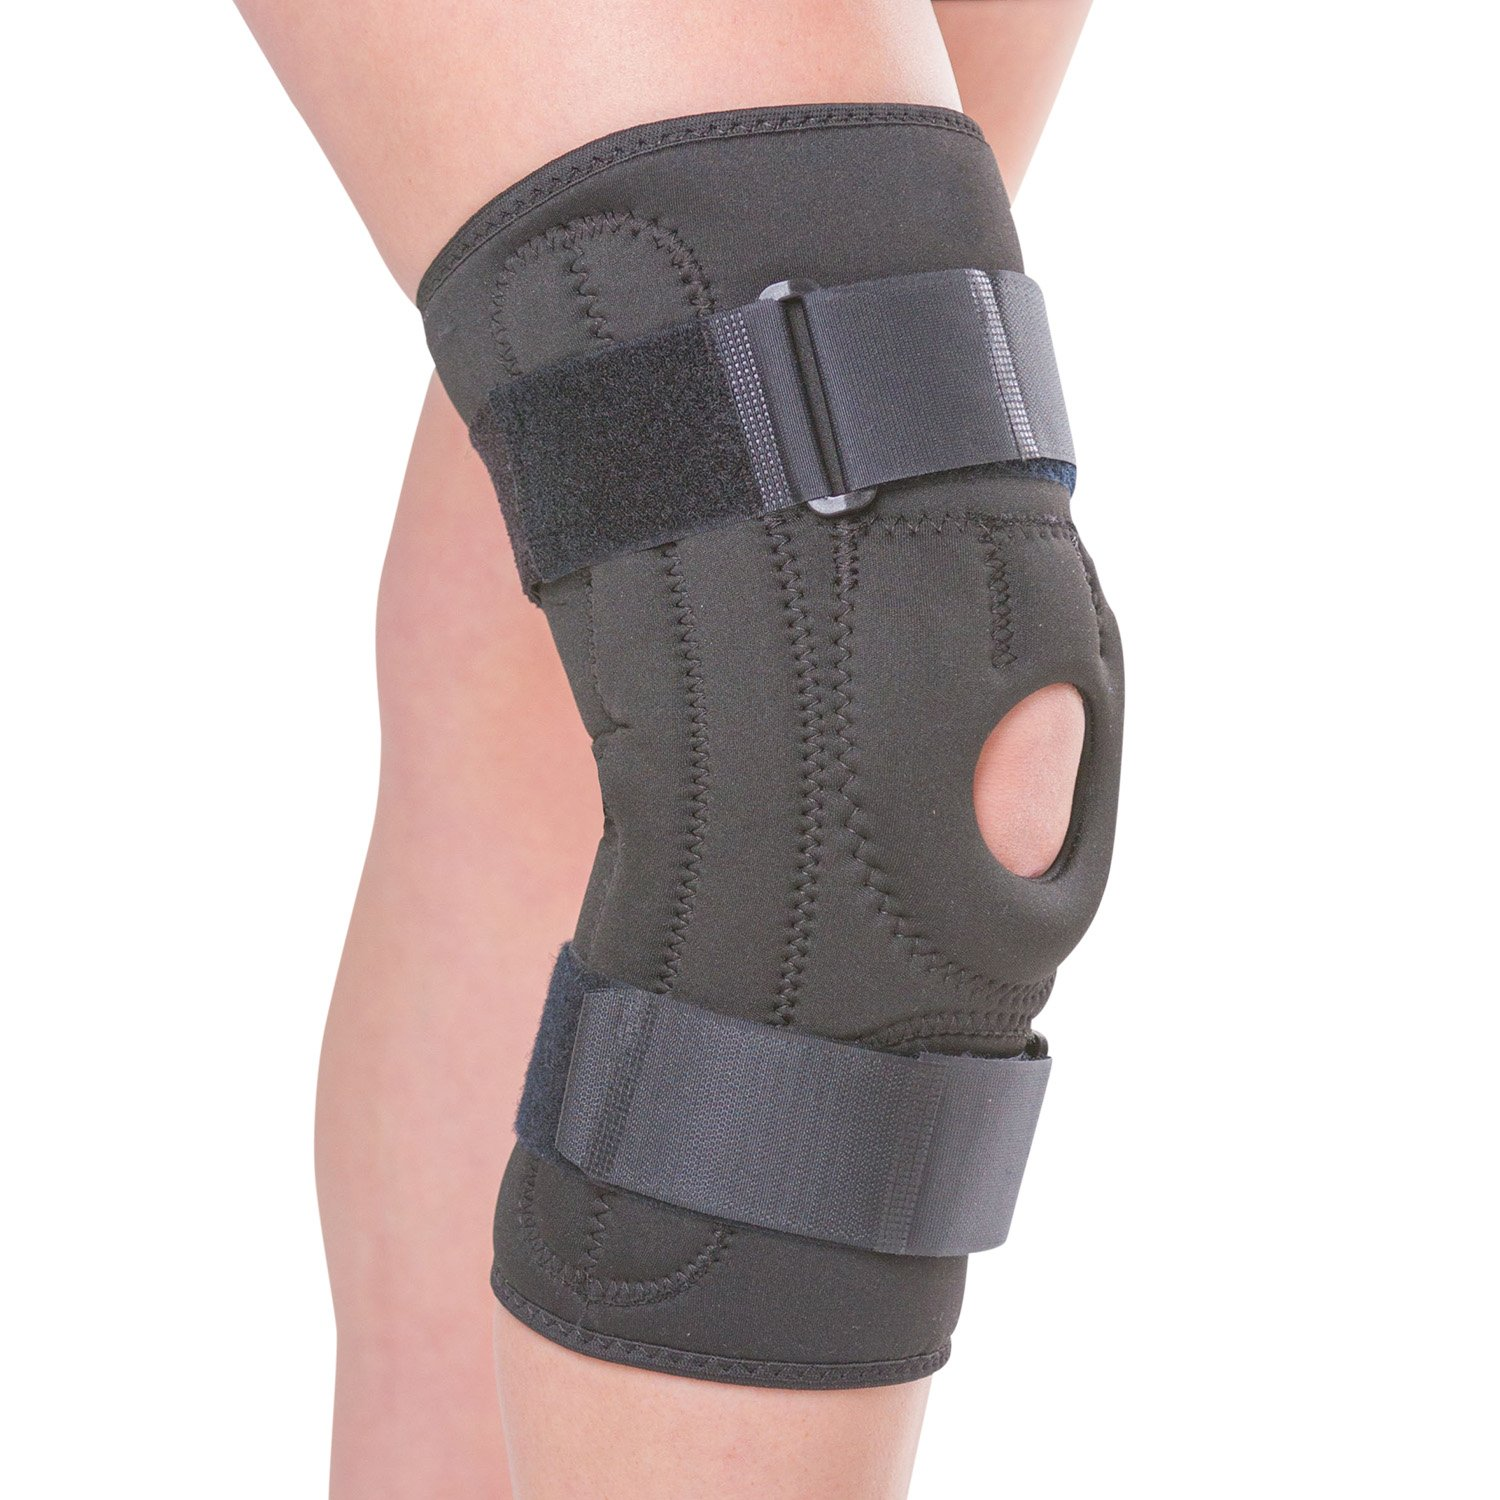 BraceAbility Patellofemoral Pain Knee Brace | Chondromalacia Treatment, Patellar Tendonitis Support to Stabilize Under Kneecap, Helps Pain from Patella Alta / Baja, Knock Knees & Bow Legs (3XL)